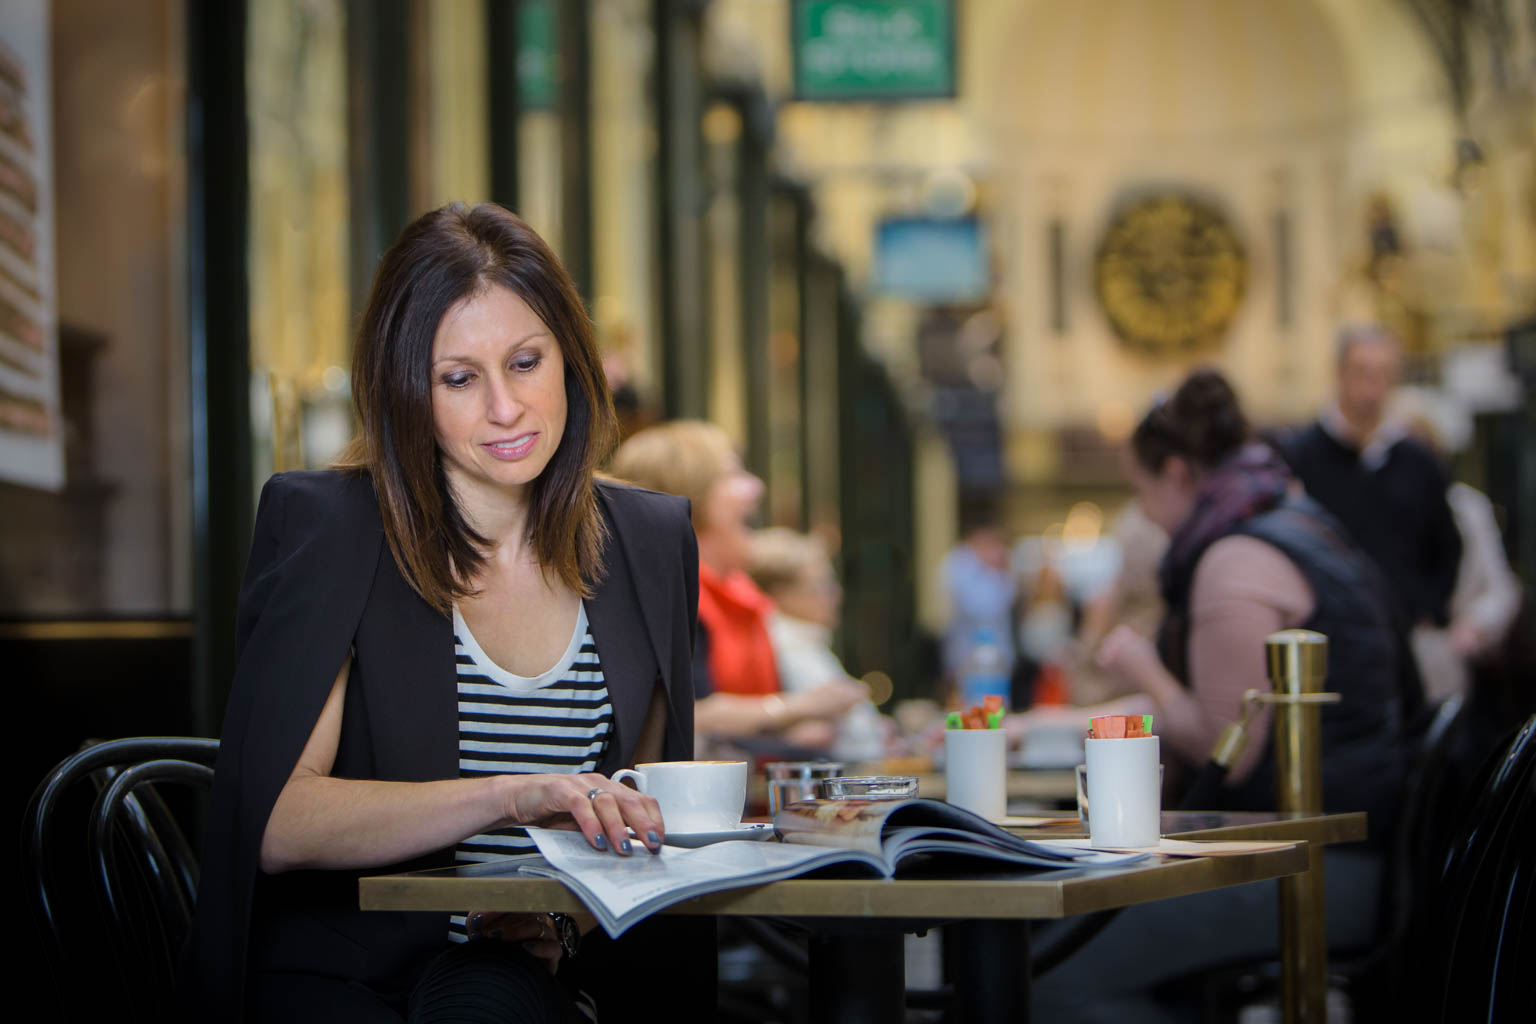 commercial photography of lady having a cup of coffee and reading a magazine in melbourne arcade